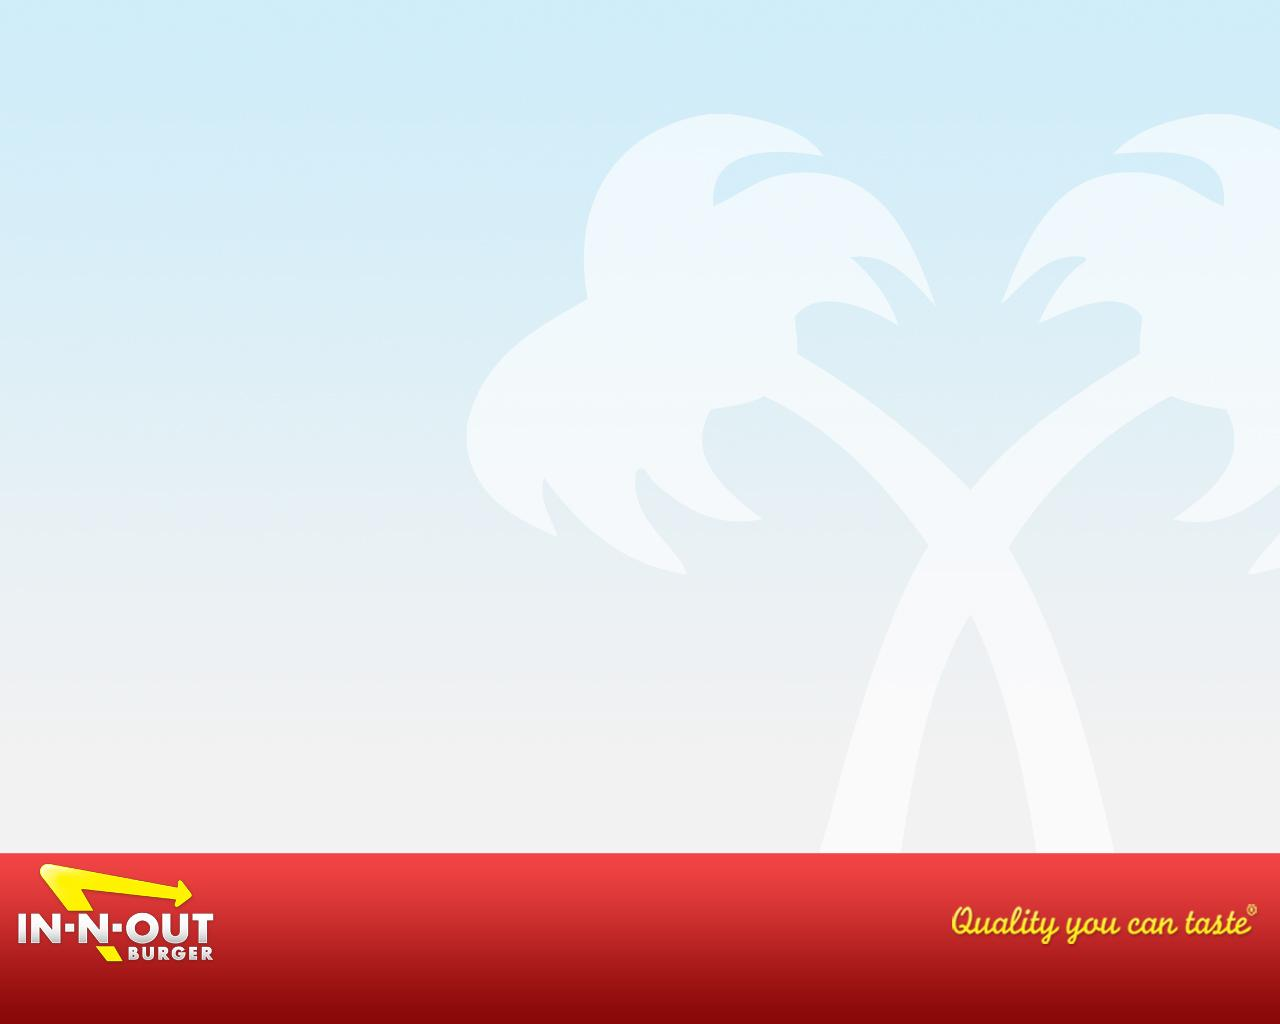 Download Wallpaper - Quality You Can Taste - 1280x1024 - In-N-Out Burger